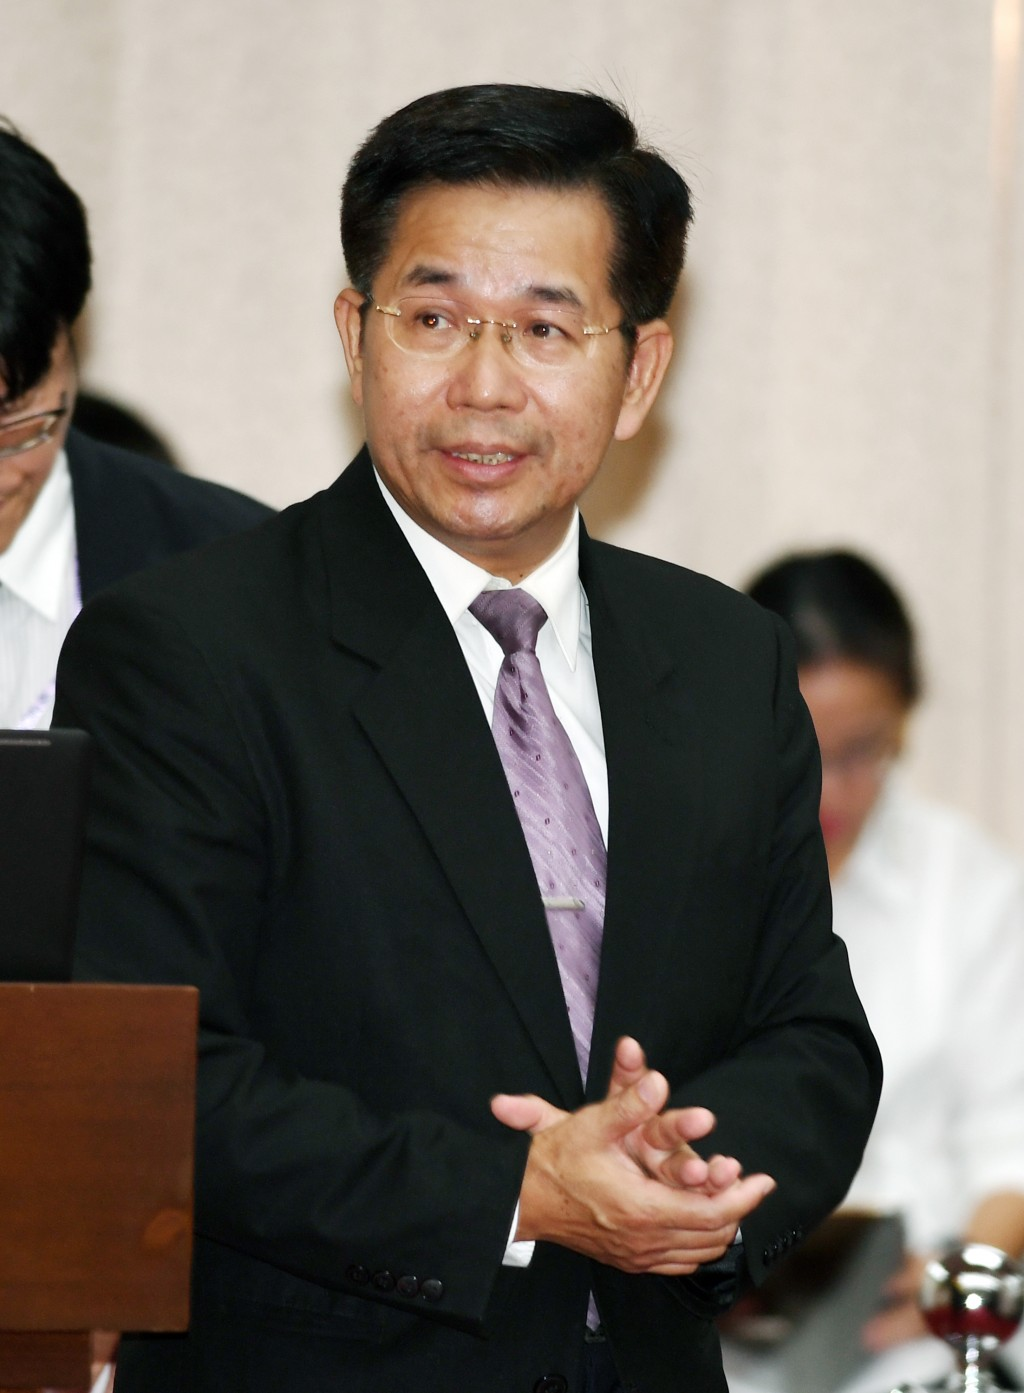 Minister of Education Pan Wen-chung (Source: CNA)